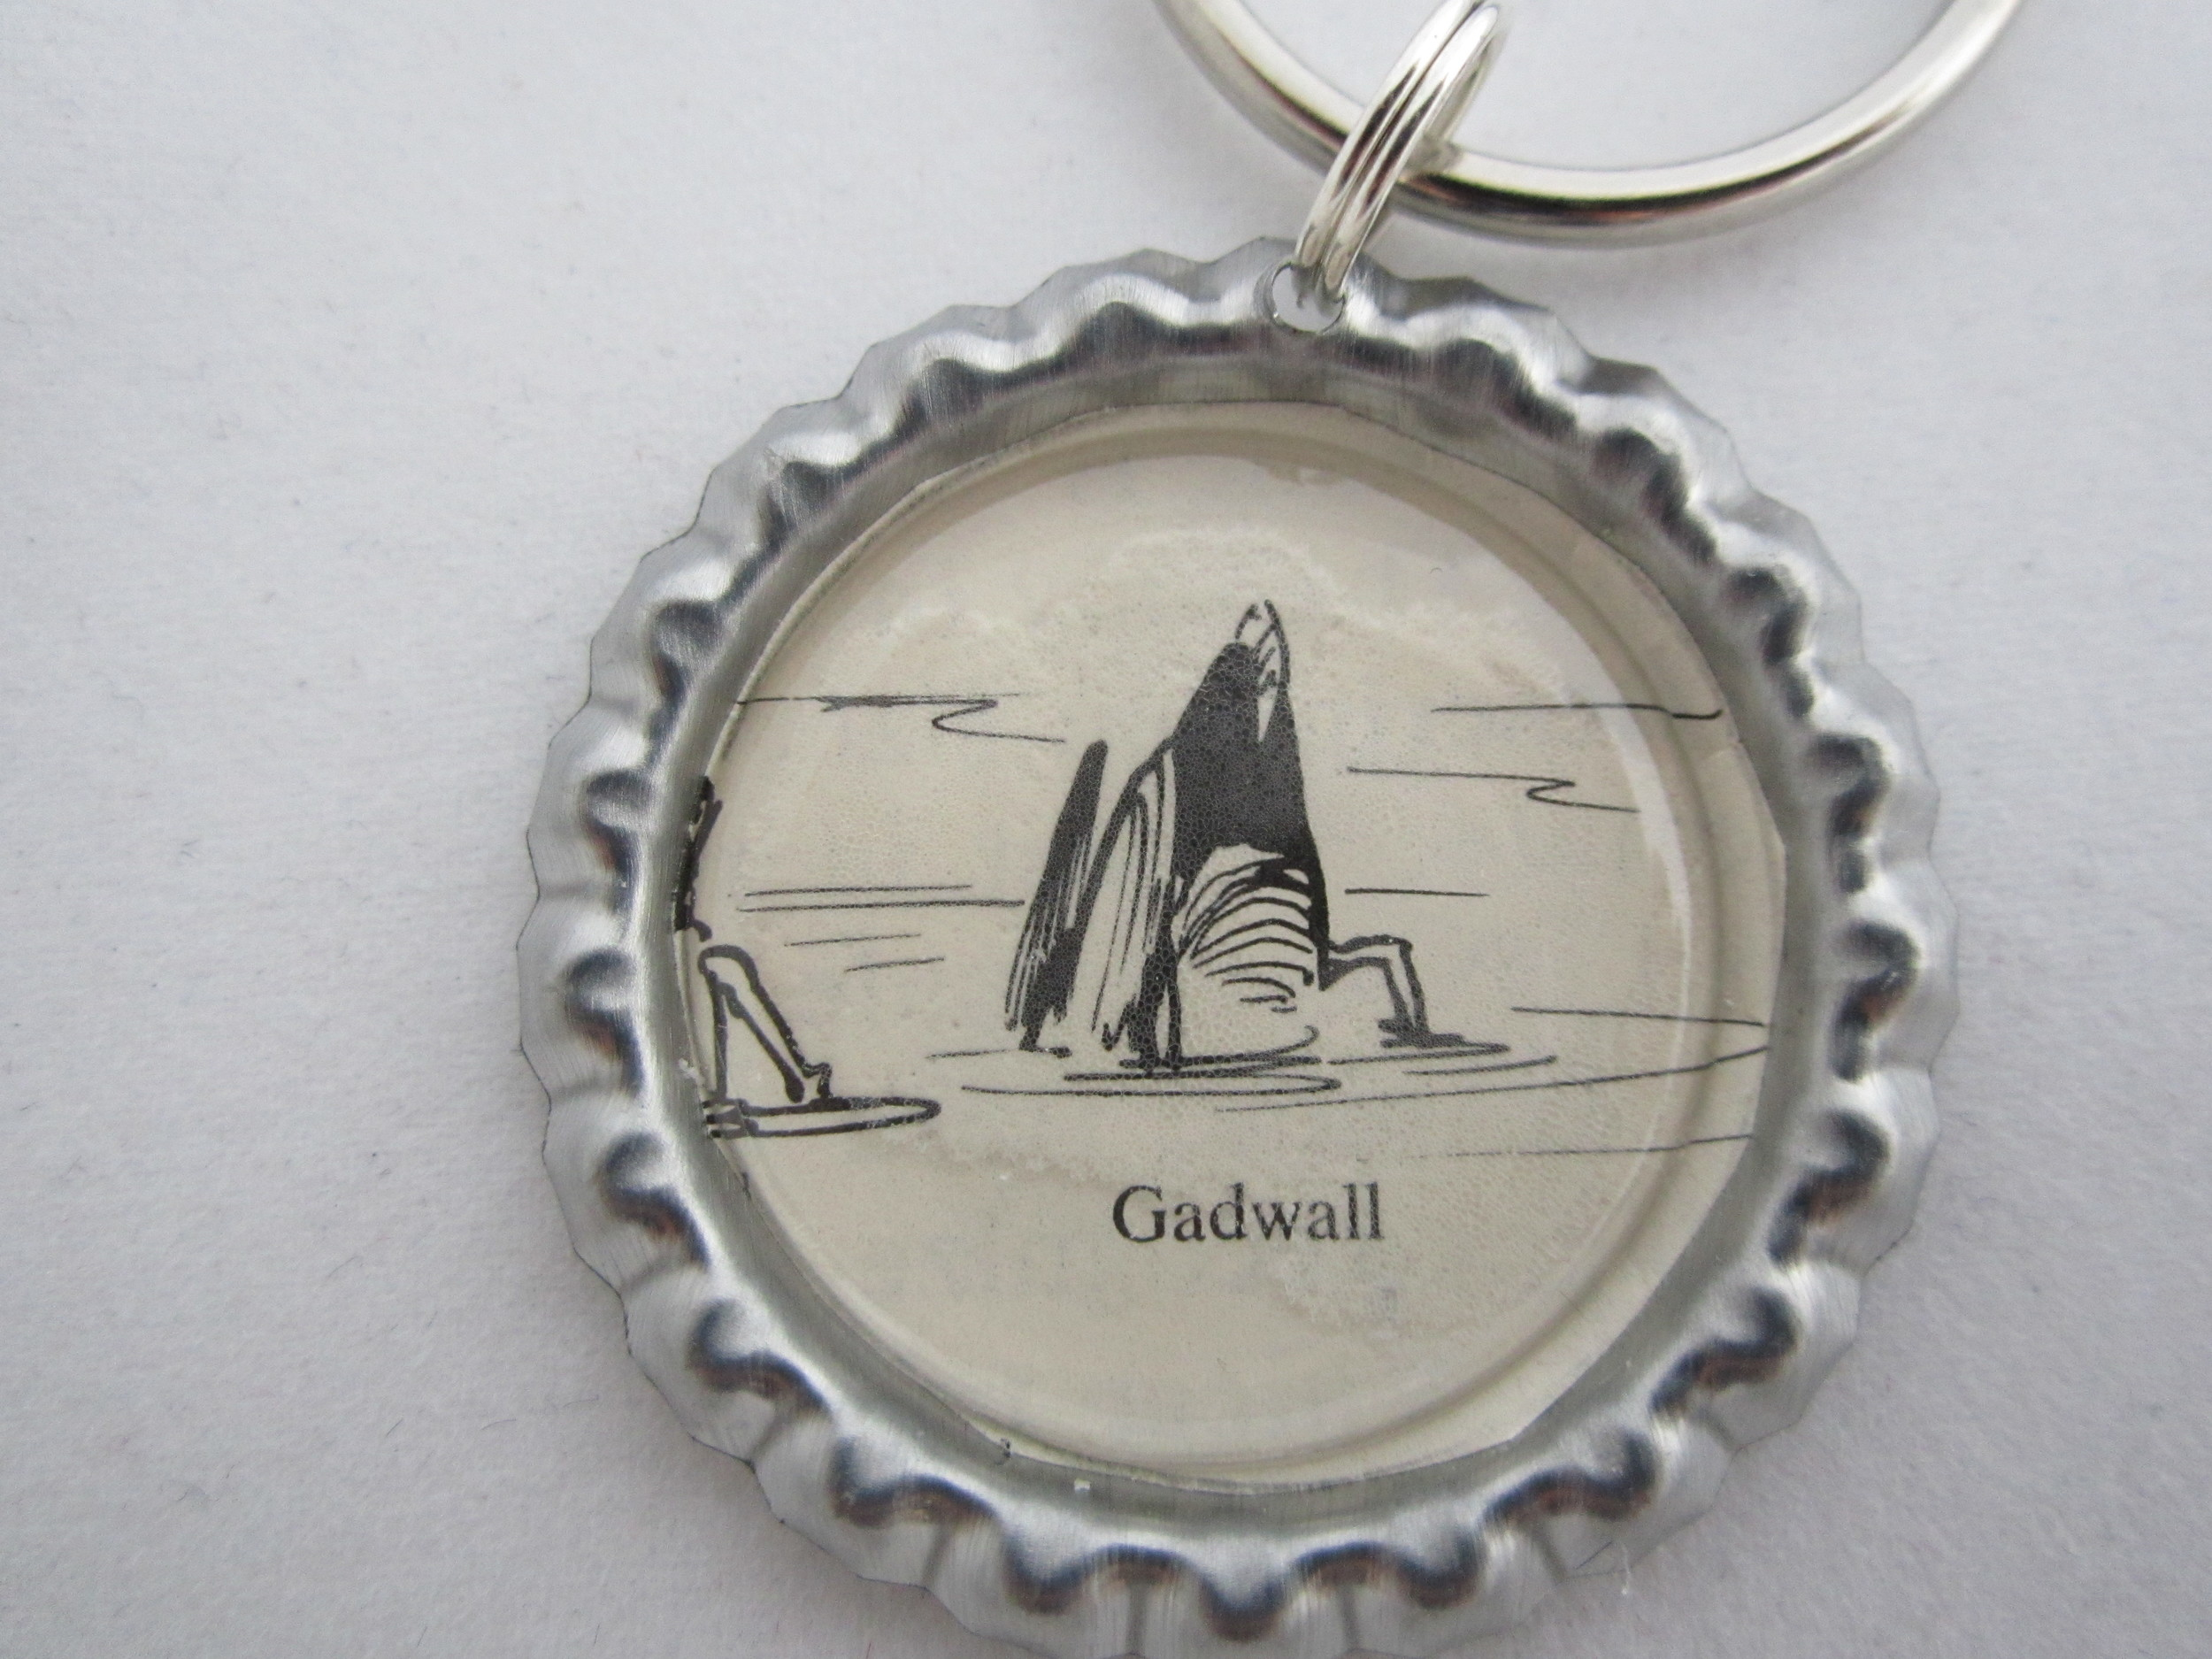 Gadwall Tail Key Chain 2.JPG